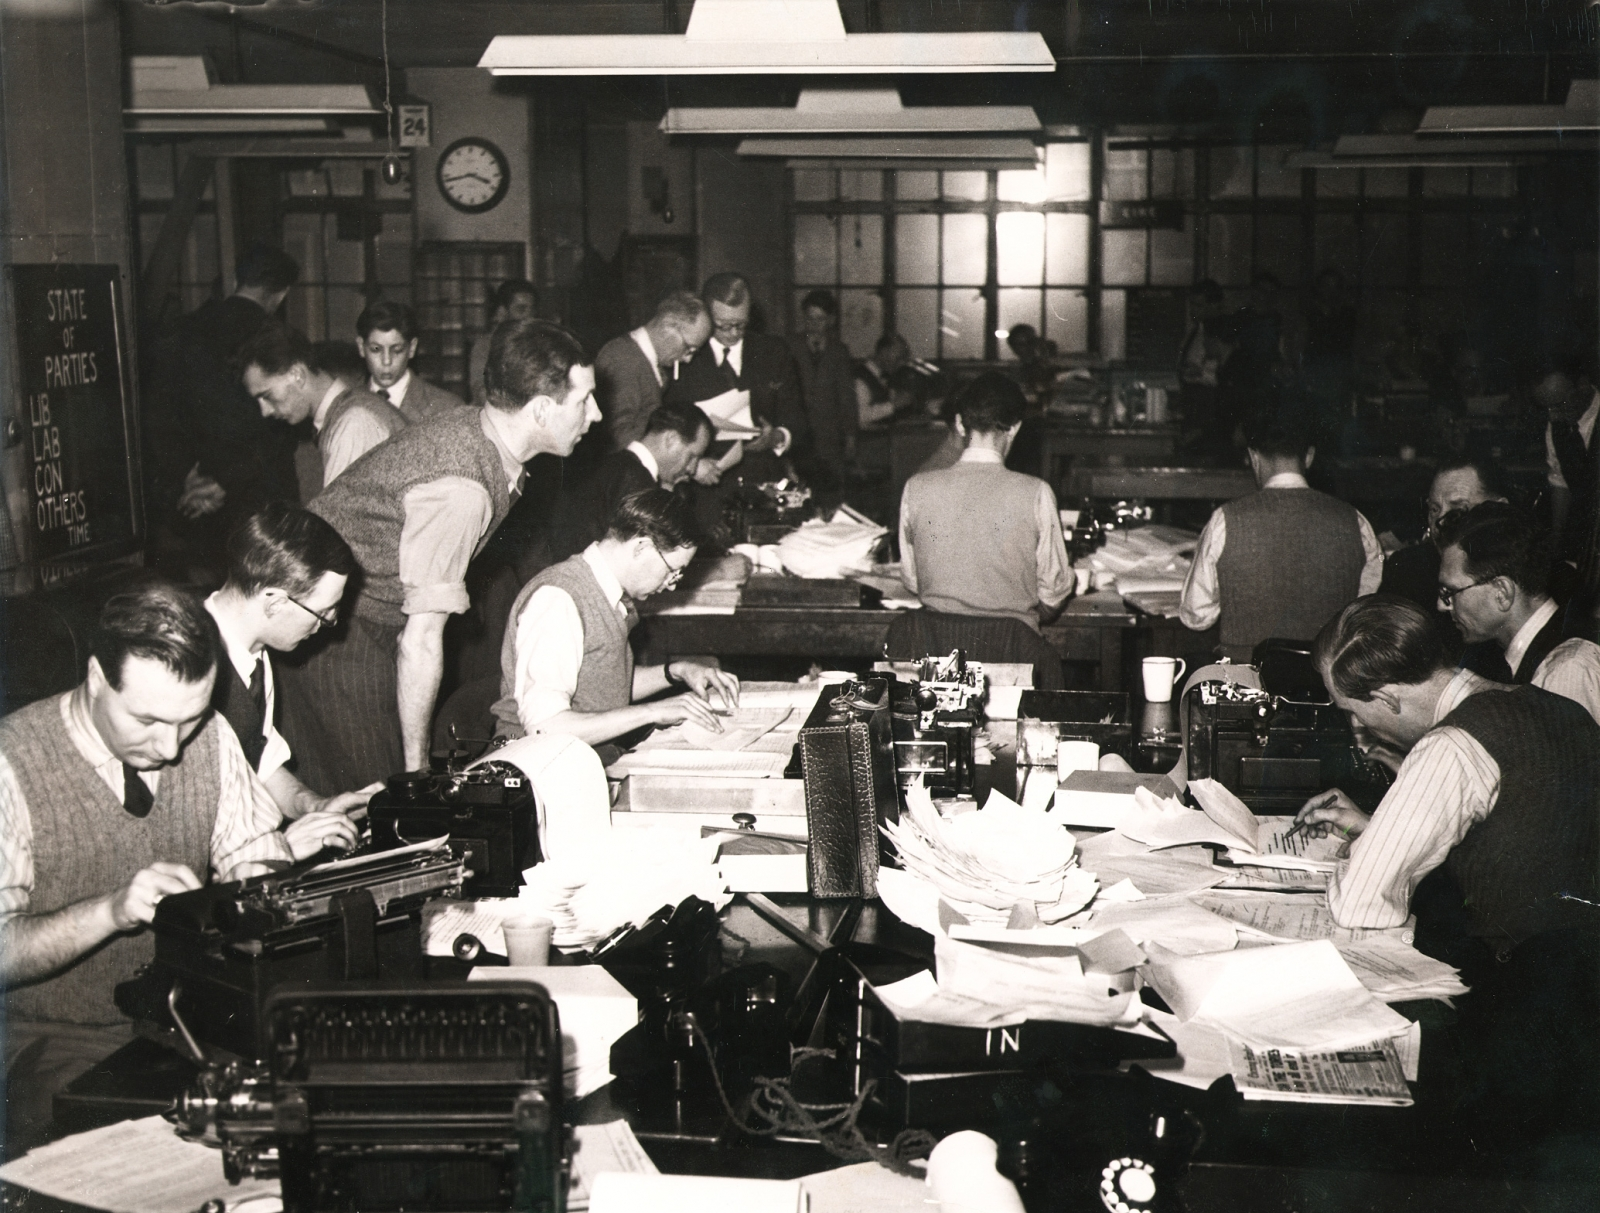 A file photo from the Reuters archive shows journalists in the Reuters Newsroom at 85 Fleet Street, London, during the British General Election of 1950